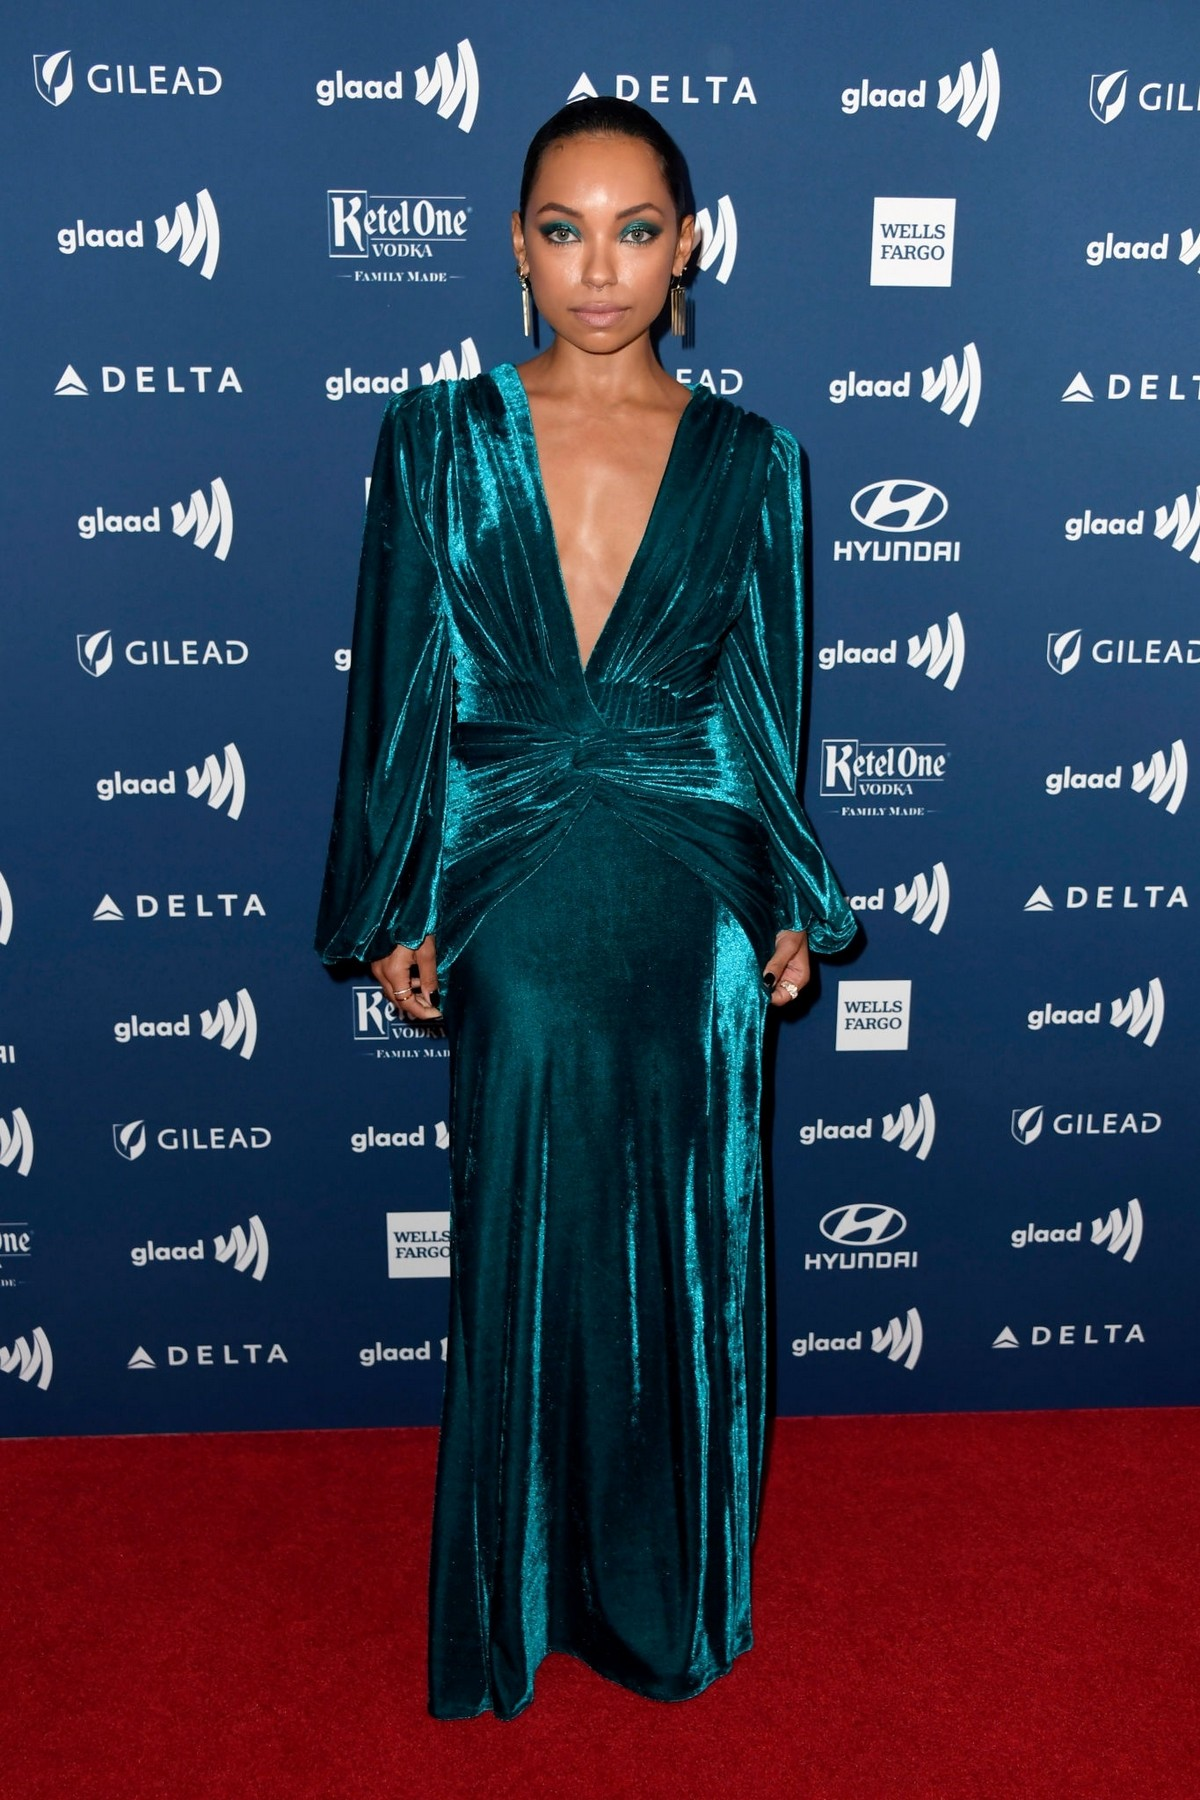 Logan Browning attends The 30th Annual GLAAD Media Awards at The Beverly Hilton Hotel 2019/03/28 7